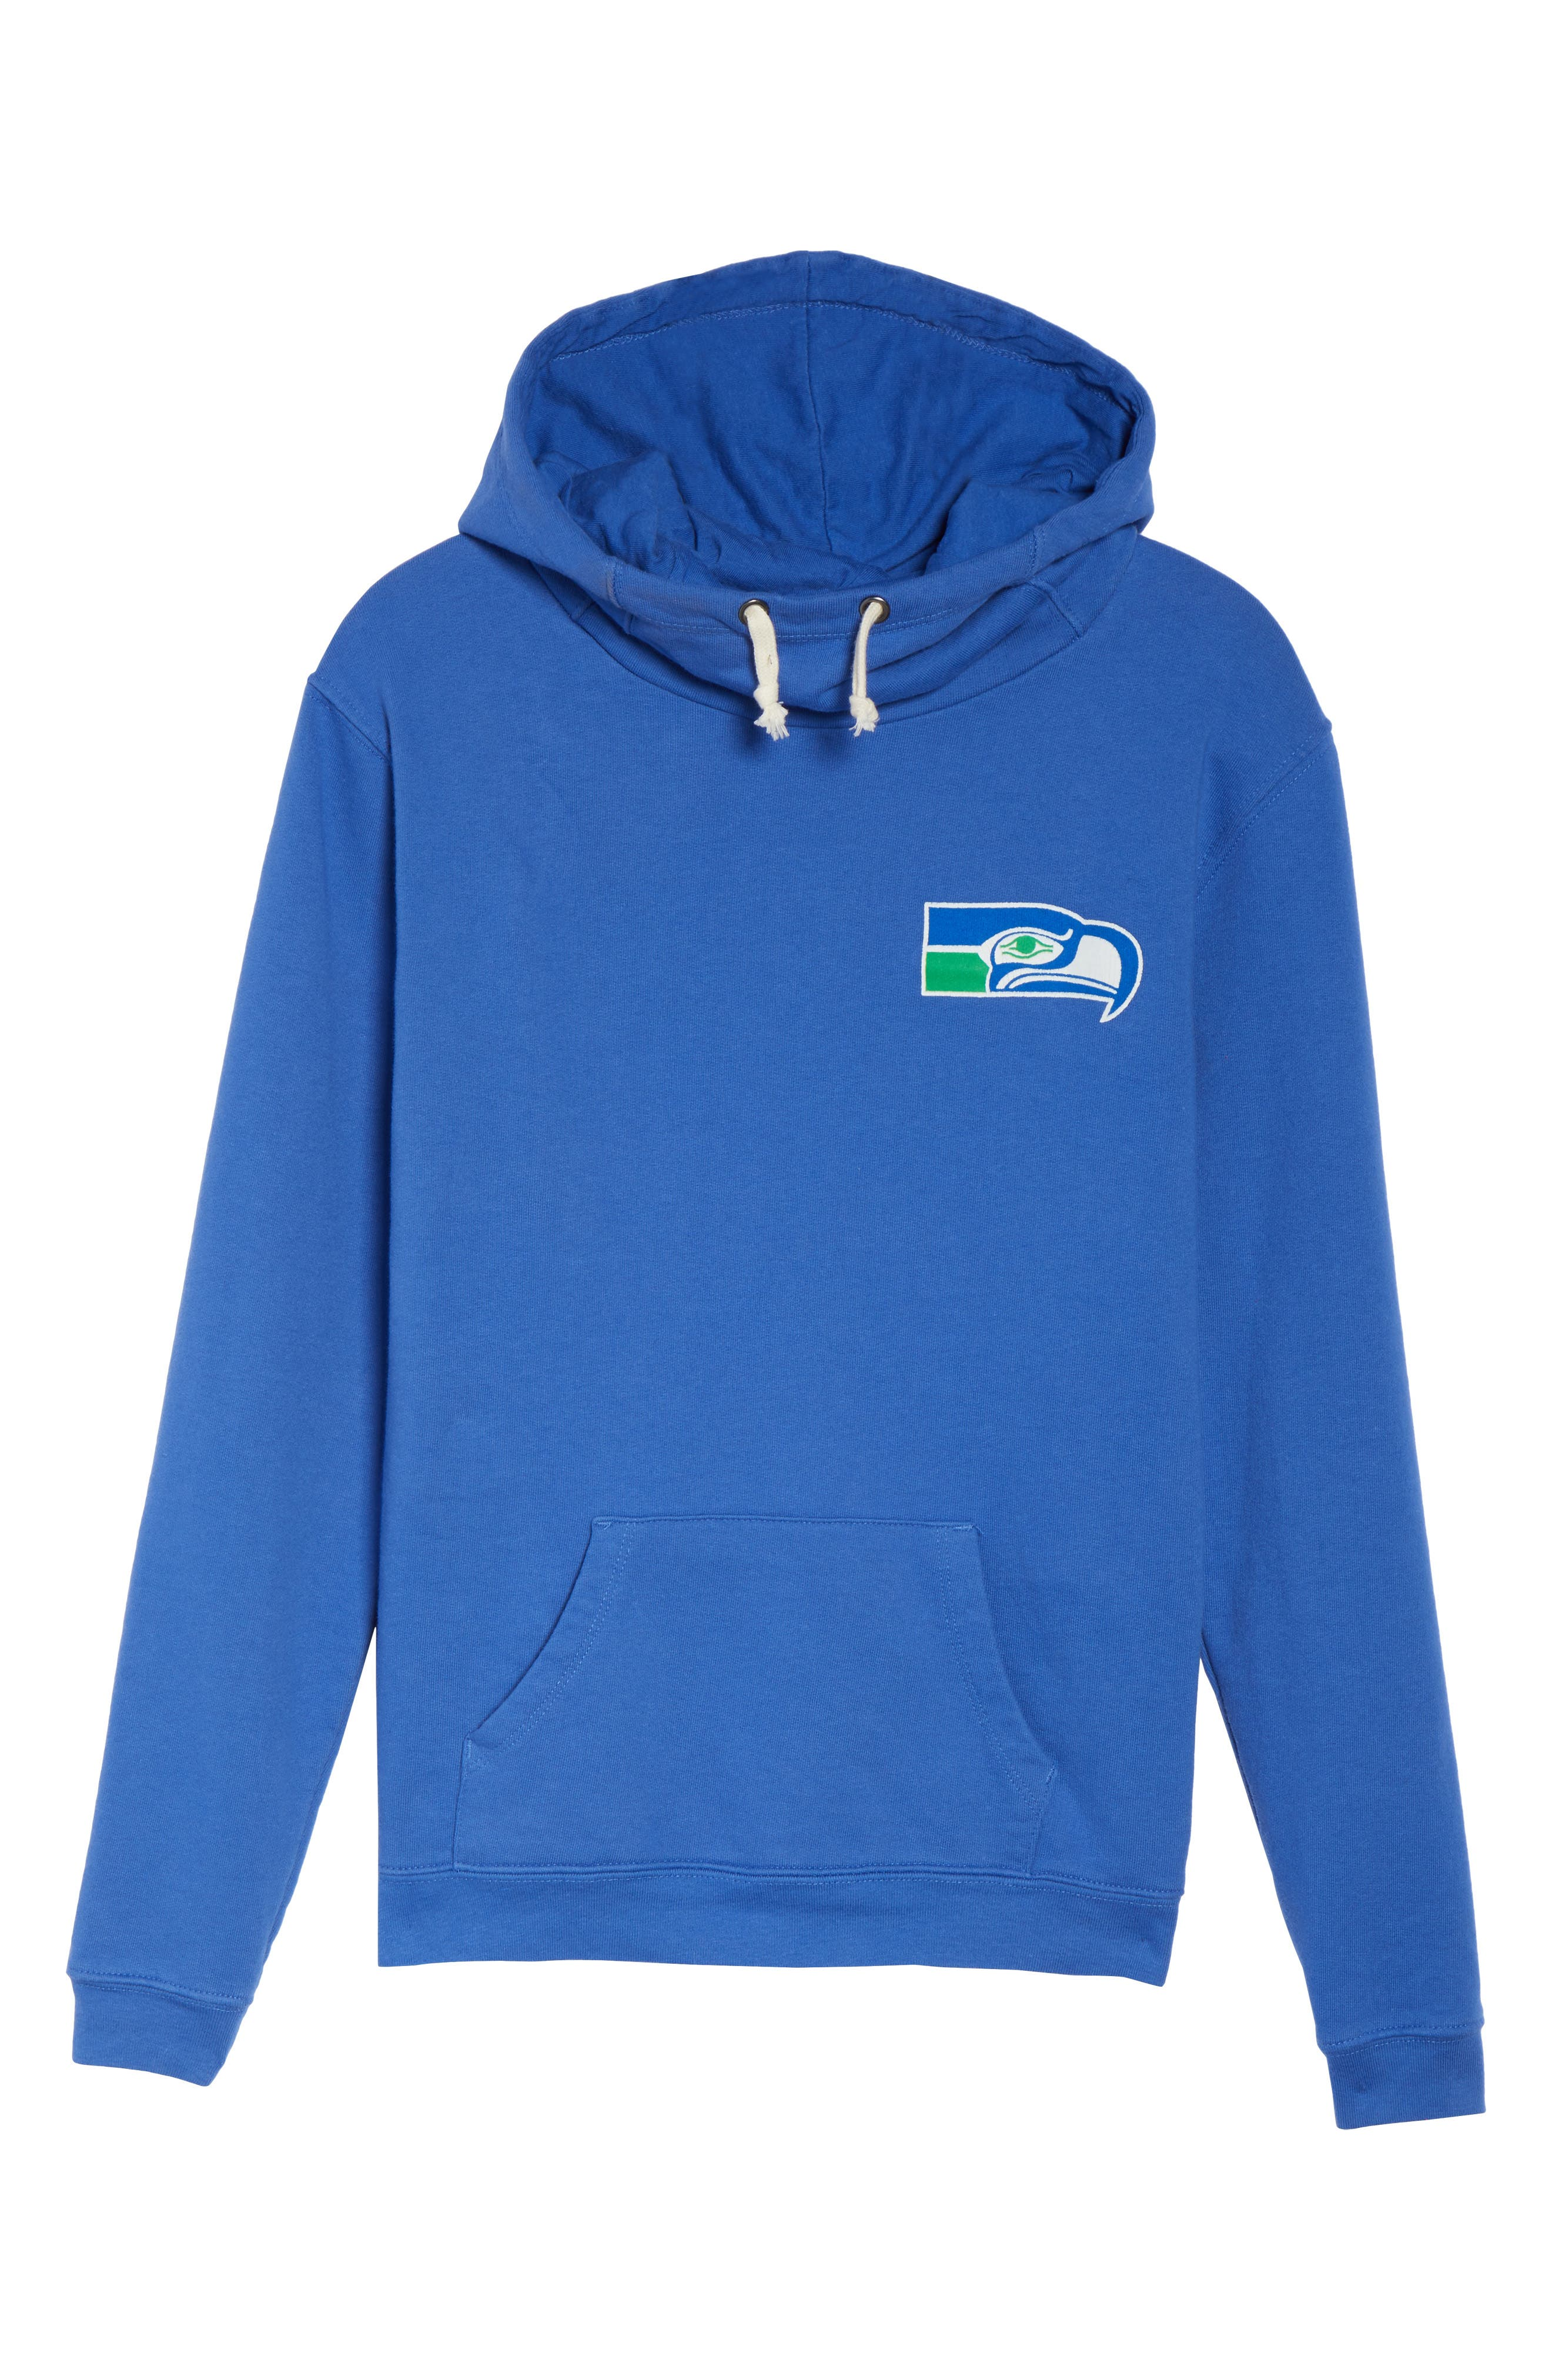 NFL Seattle Seahawks Sunday Hoodie,                             Alternate thumbnail 6, color,                             497